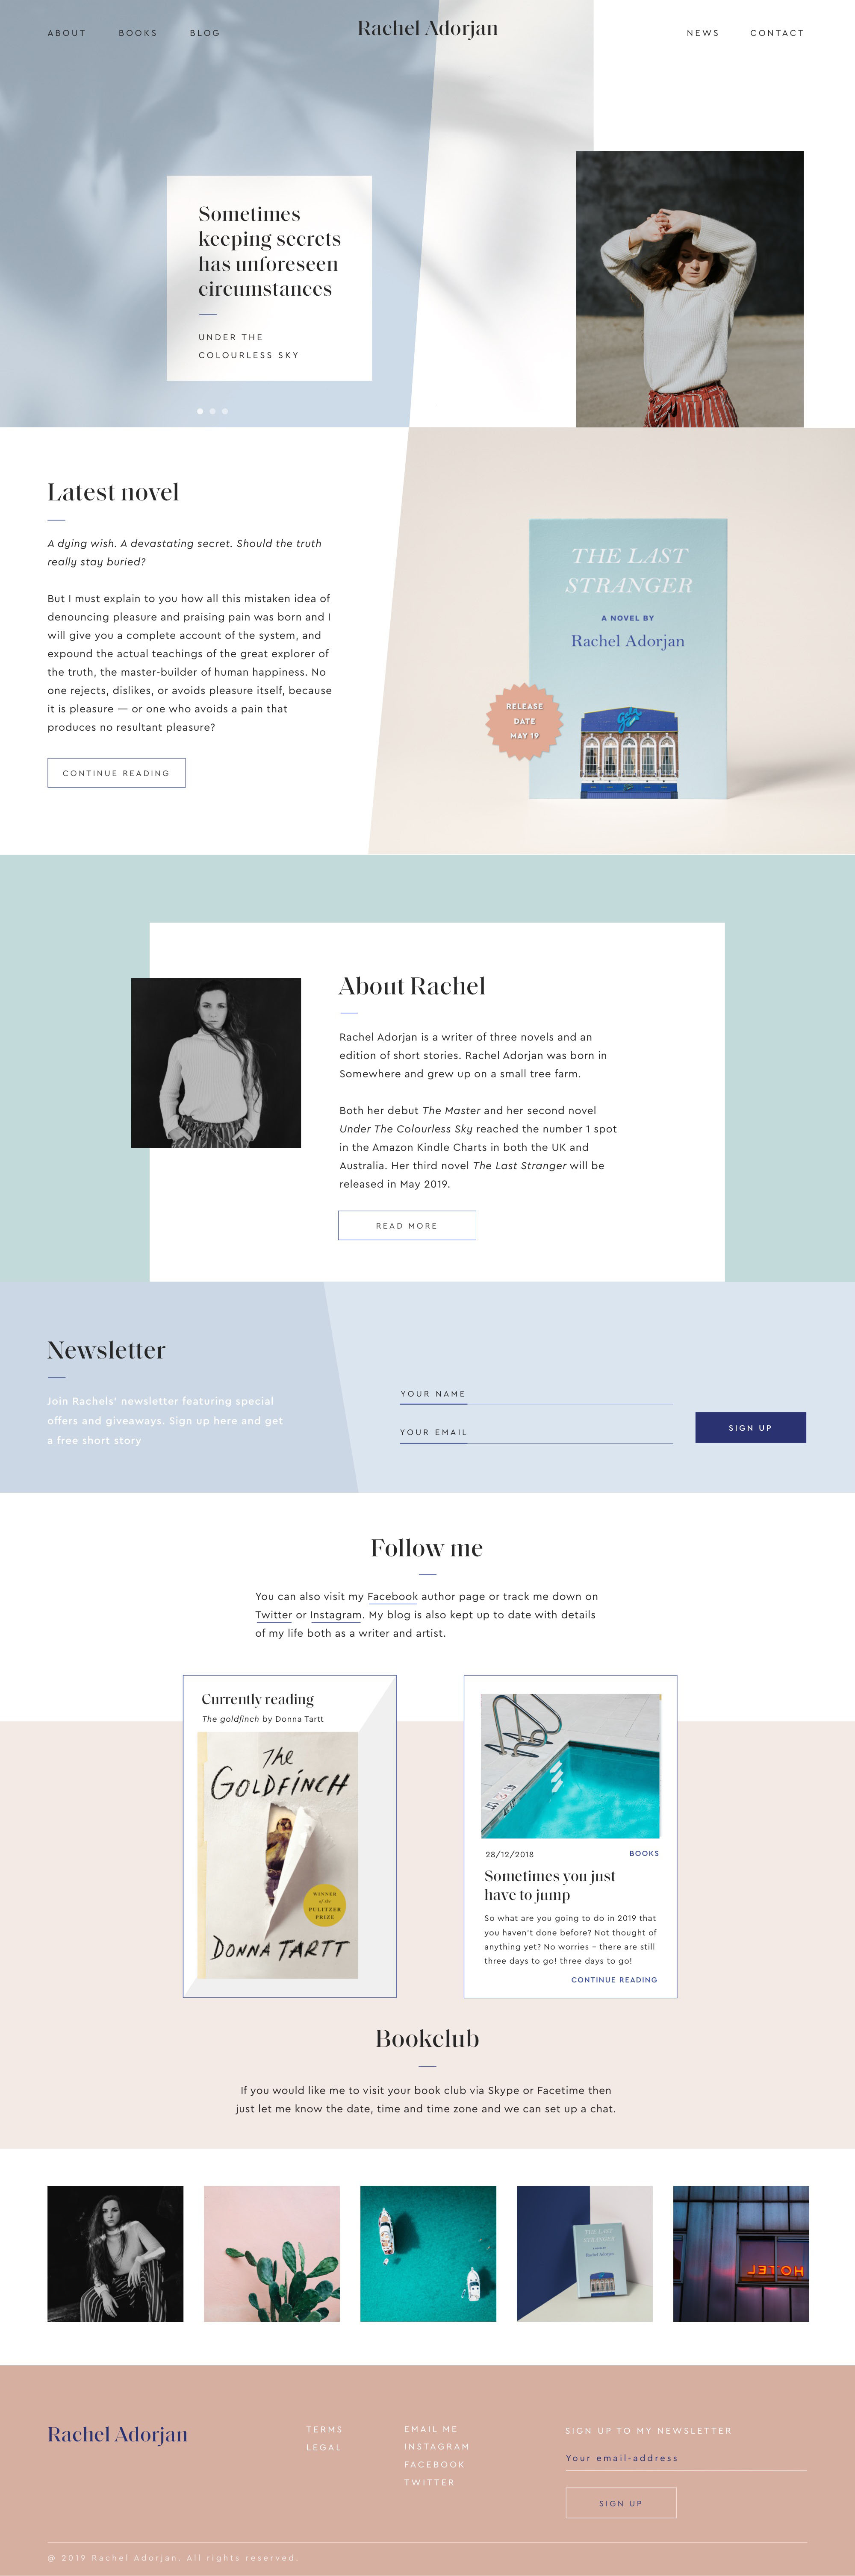 Homepage website design for a british writer